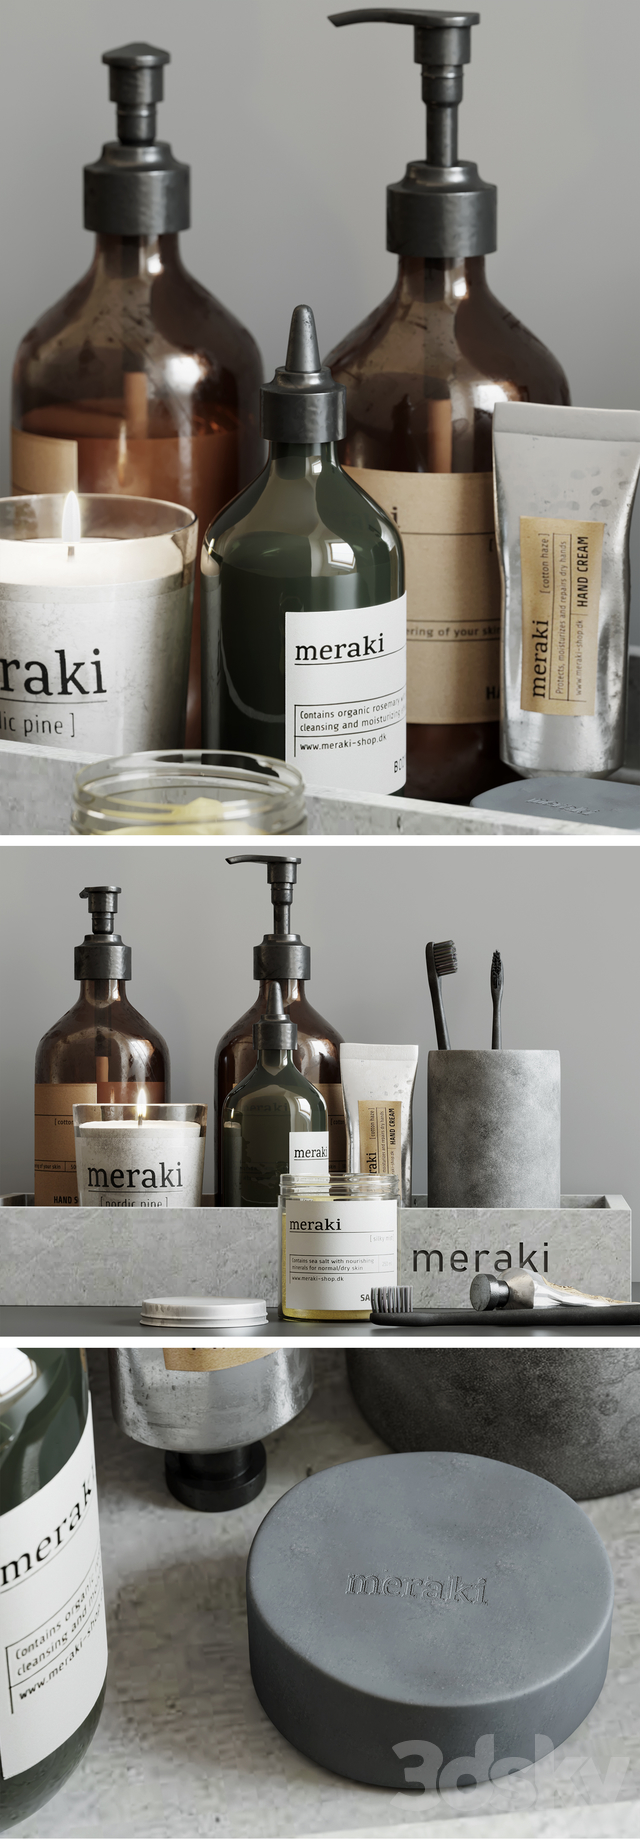 Meraki Decorative Set